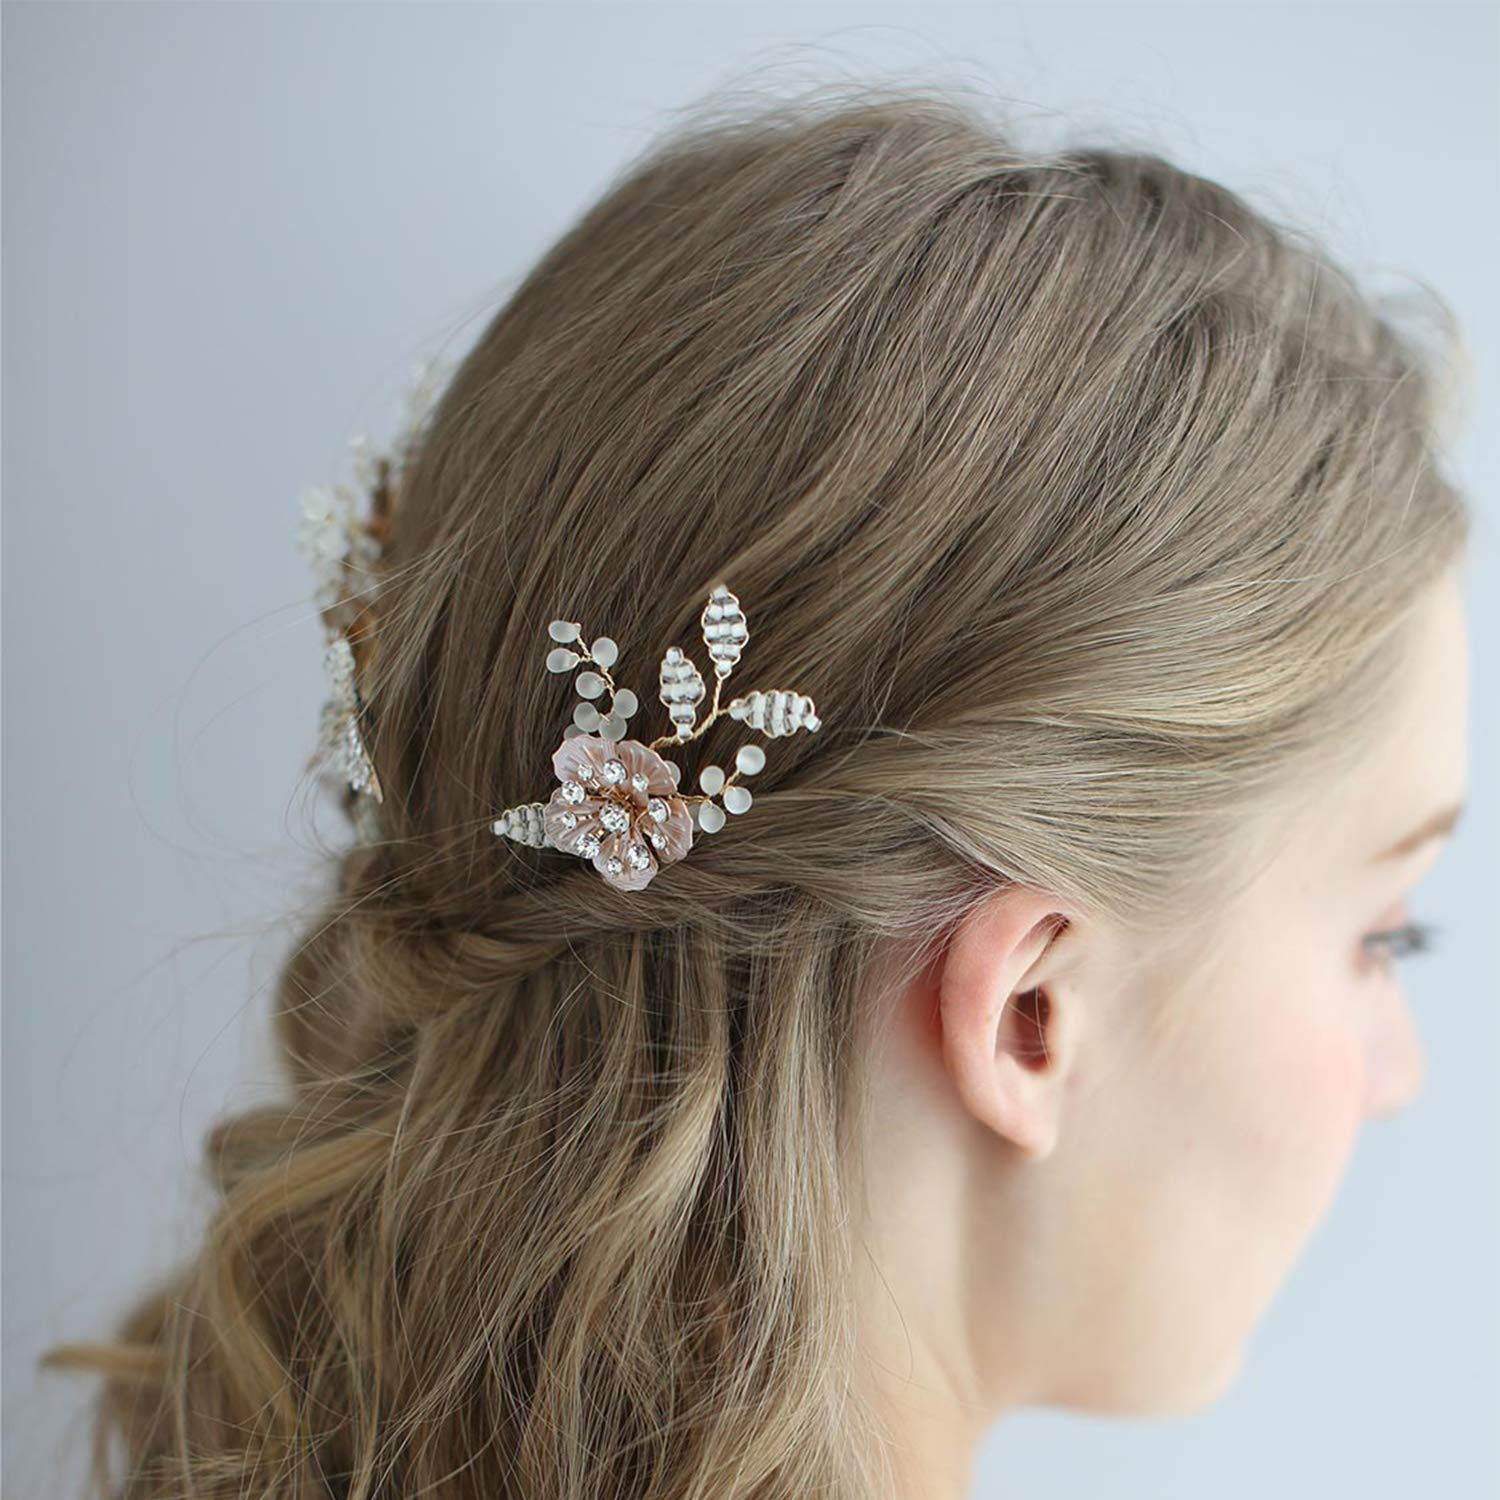 AW BRIDAL Wedding Hair Pins Clips Rhinestone Crystal Flower Girl Wedding Hair Combs Rose Gold Bridal Hair Piece for Women Girls